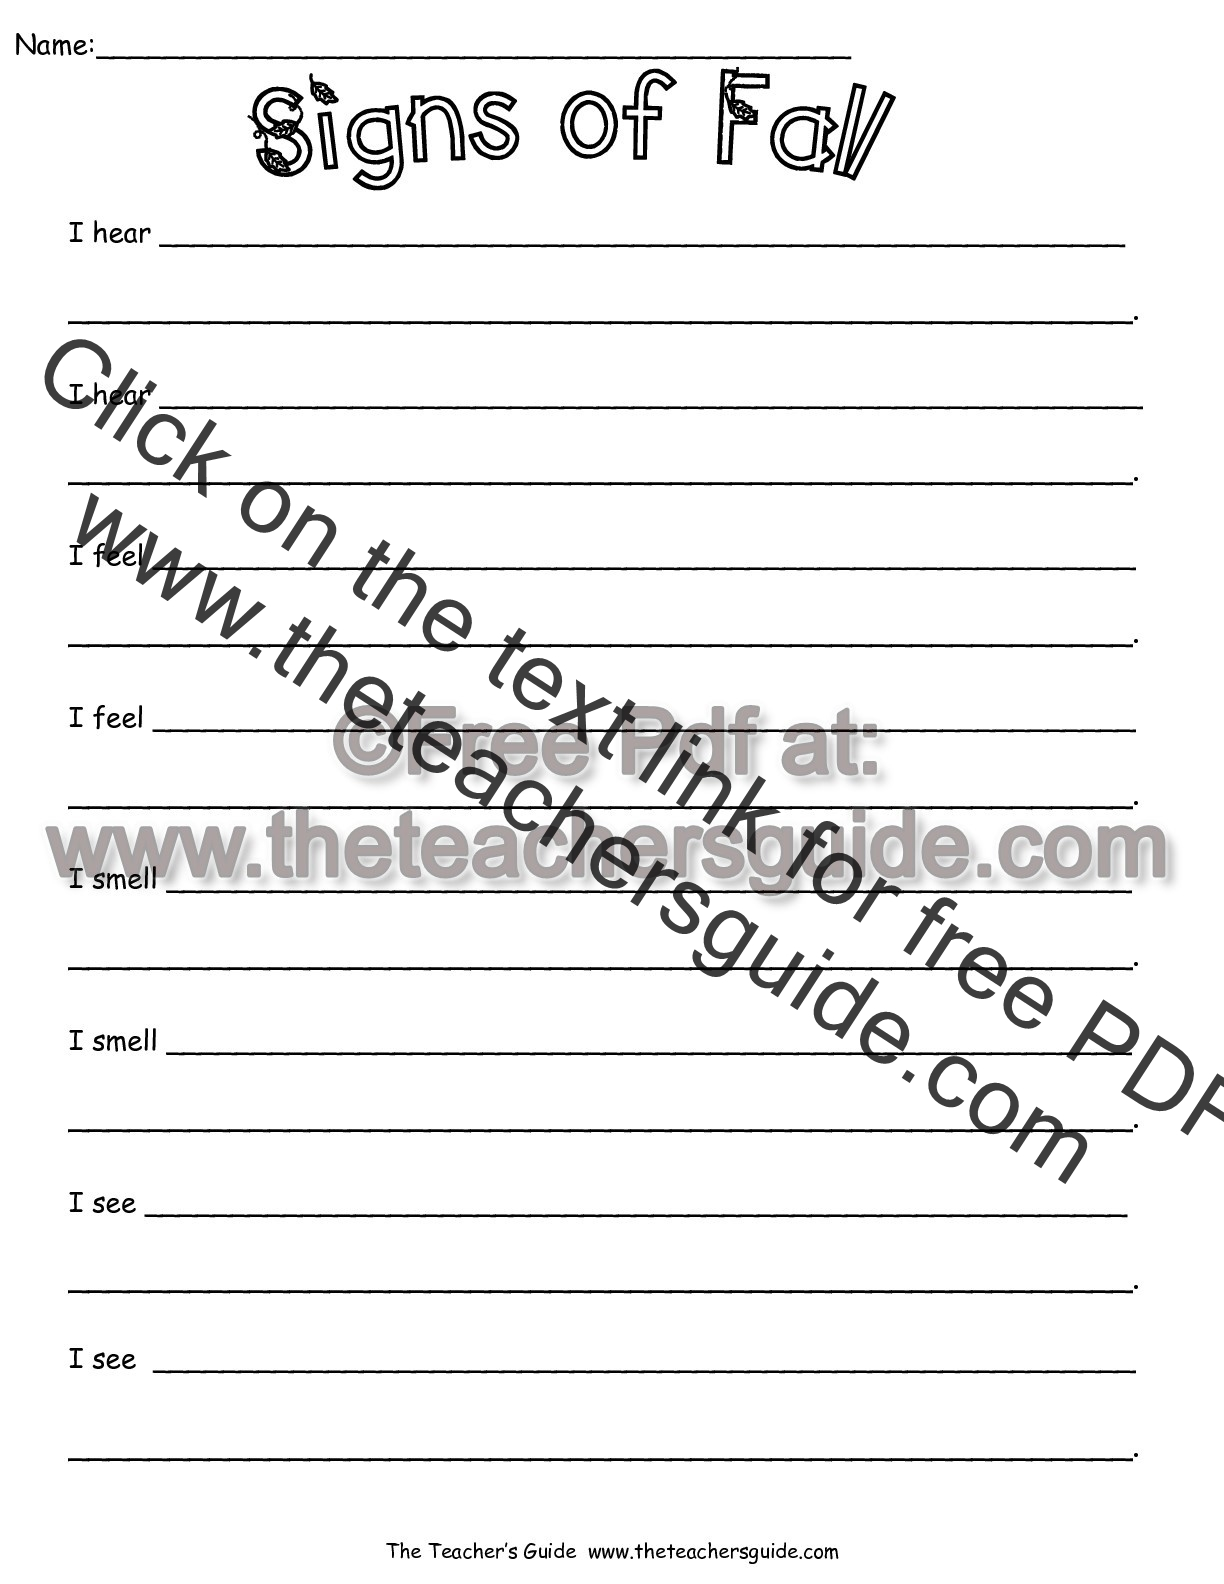 signs of fall worksheet - Fall Worksheets For First Grade